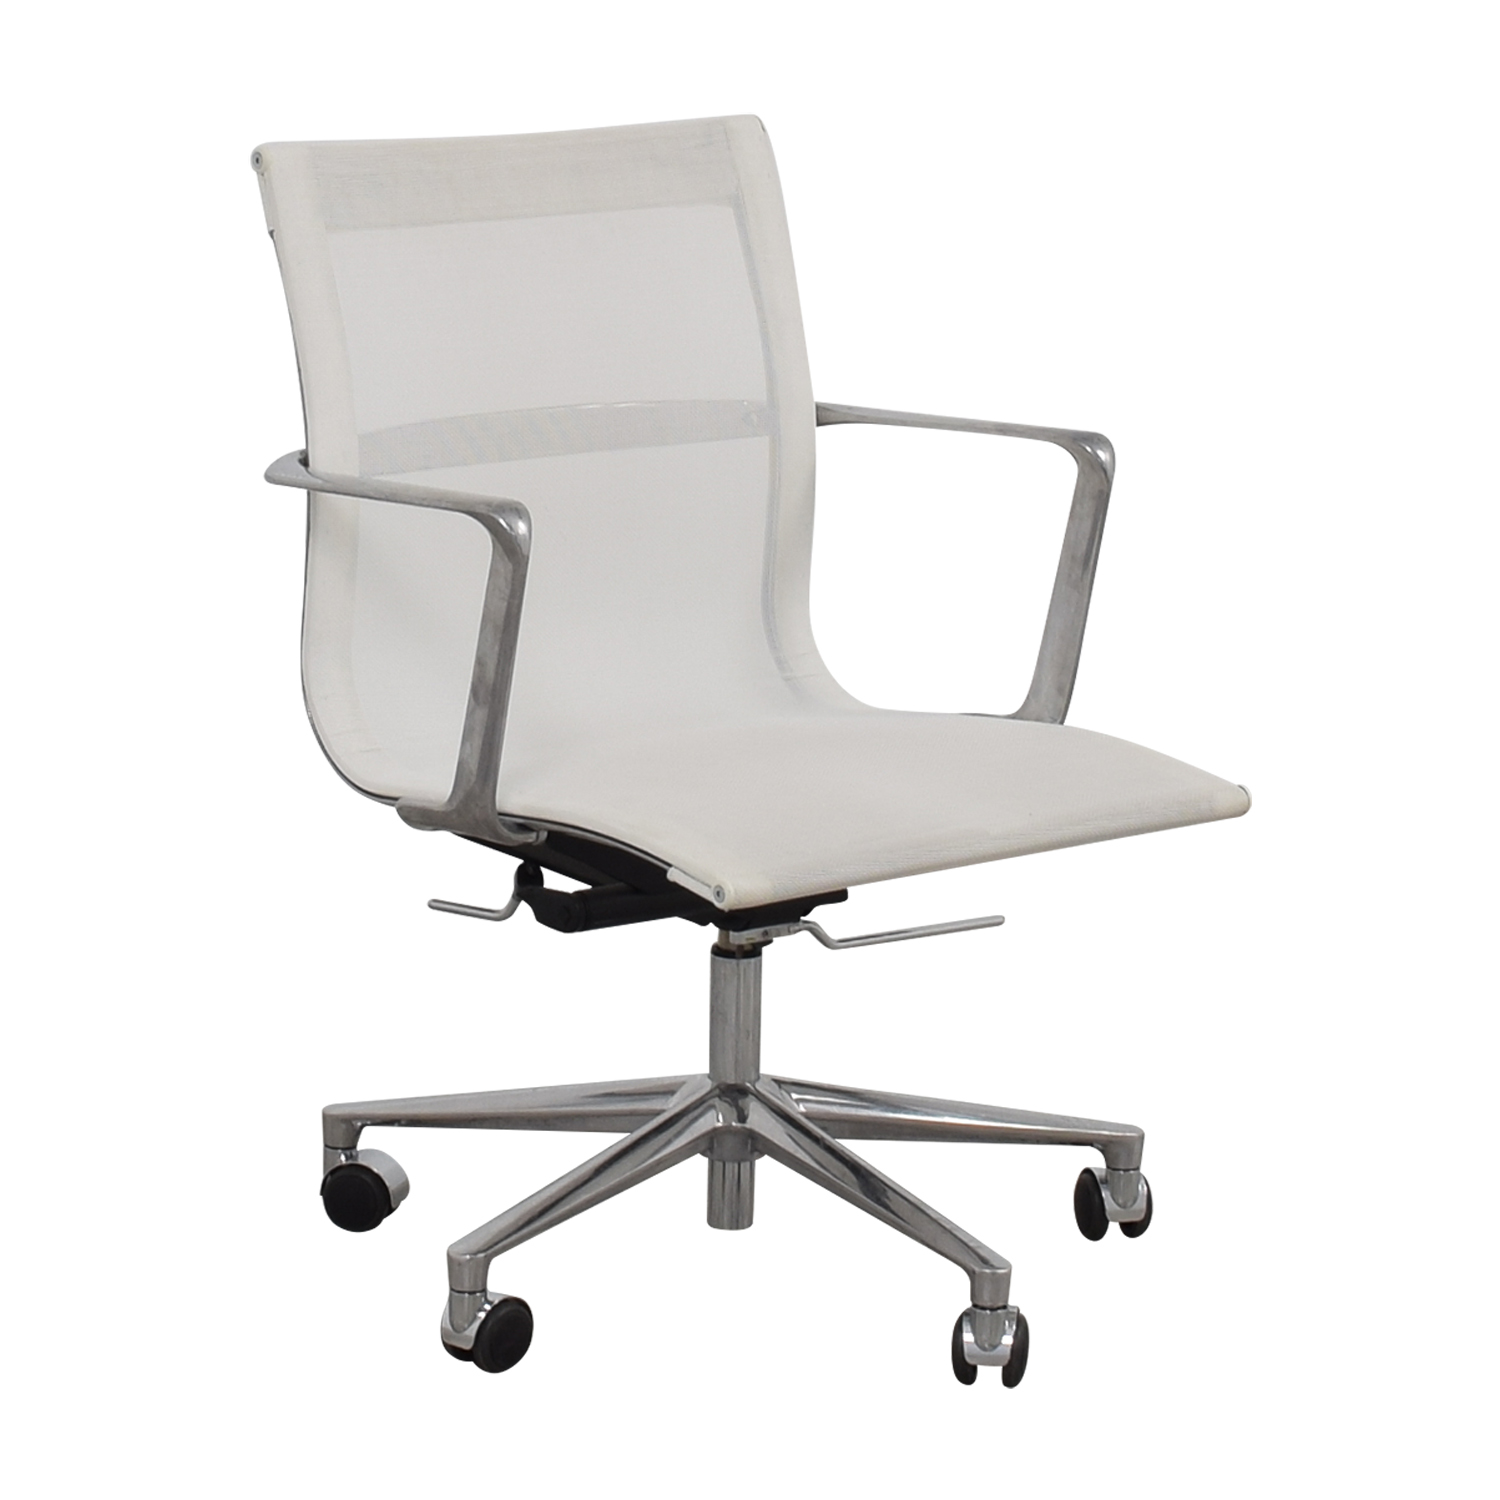 International Catsana Furniture Una White Mesh Chair sale